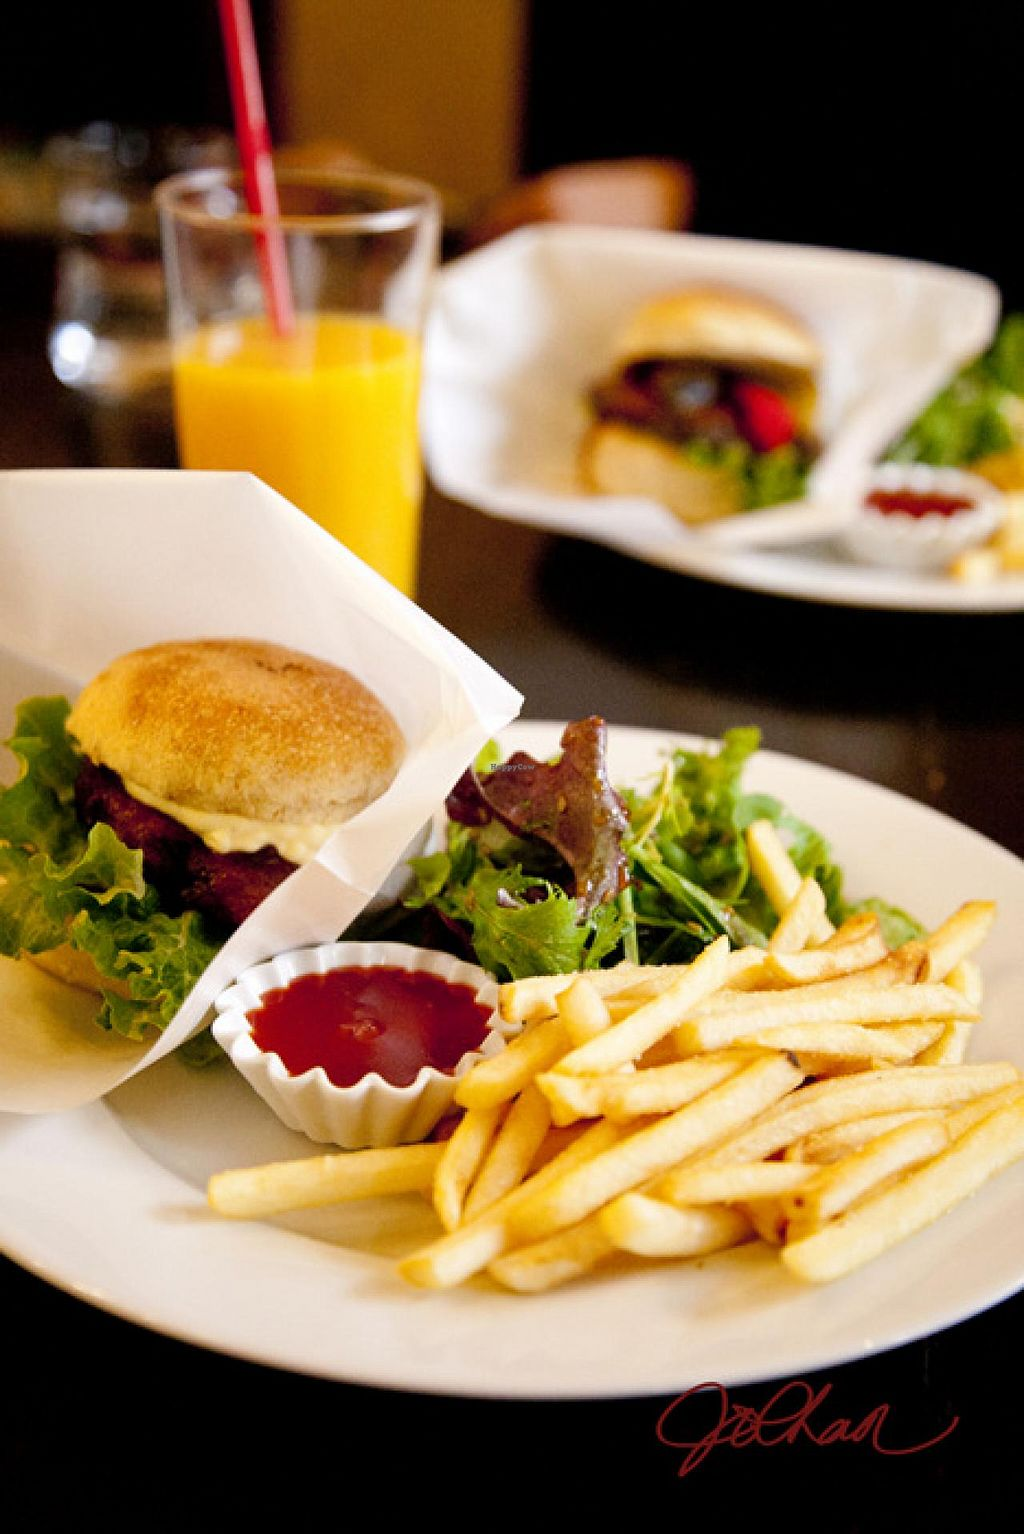 """Photo of CLOSED: Matsuontoko Cafe  by <a href=""""/members/profile/HappyVegMom"""">HappyVegMom</a> <br/>The burger and drink. Yummy!! <br/> April 14, 2014  - <a href='/contact/abuse/image/31575/67608'>Report</a>"""